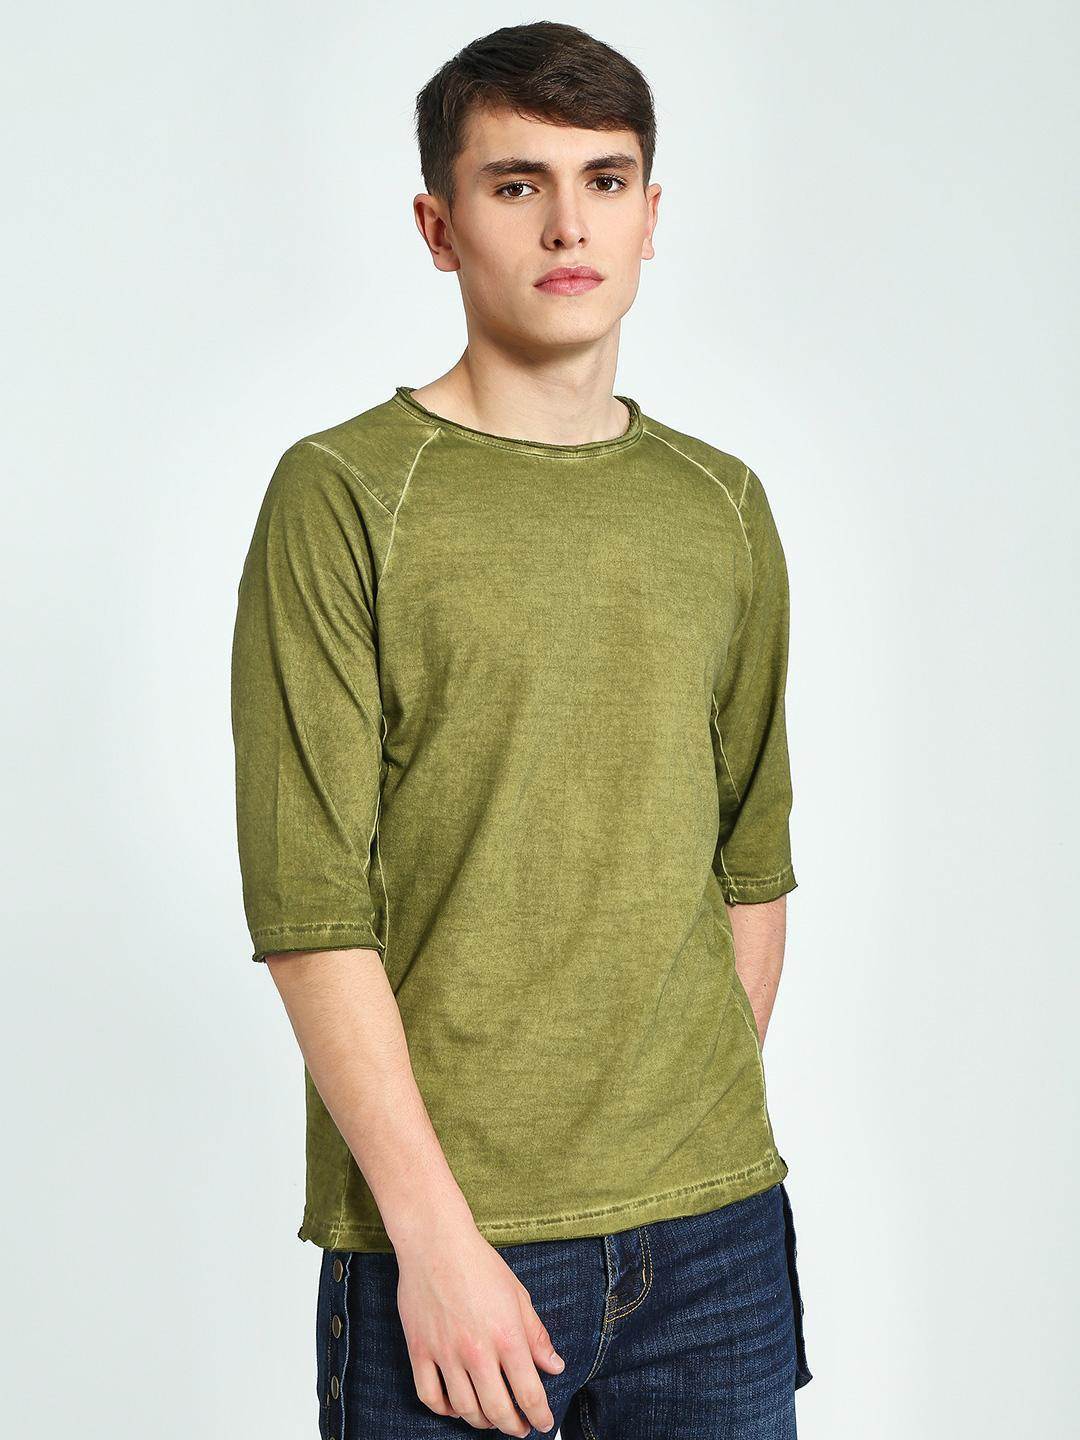 Blue Saint Olive Crew Neck Raglan T-Shirt 1